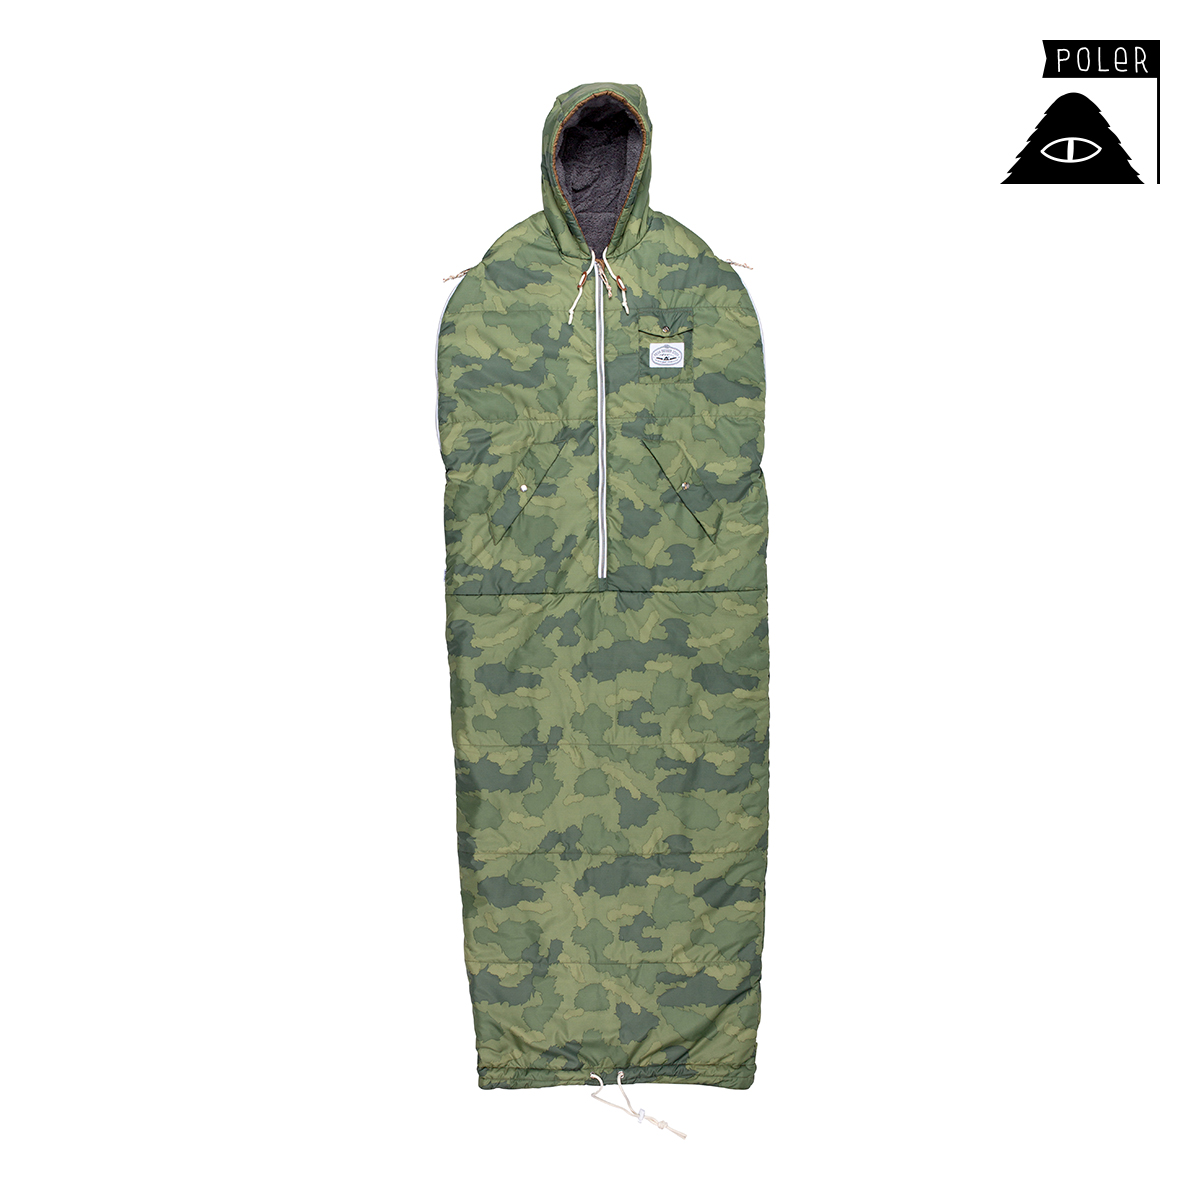 폴러 The Shaggy Napsack - Green Furrt Camo/D